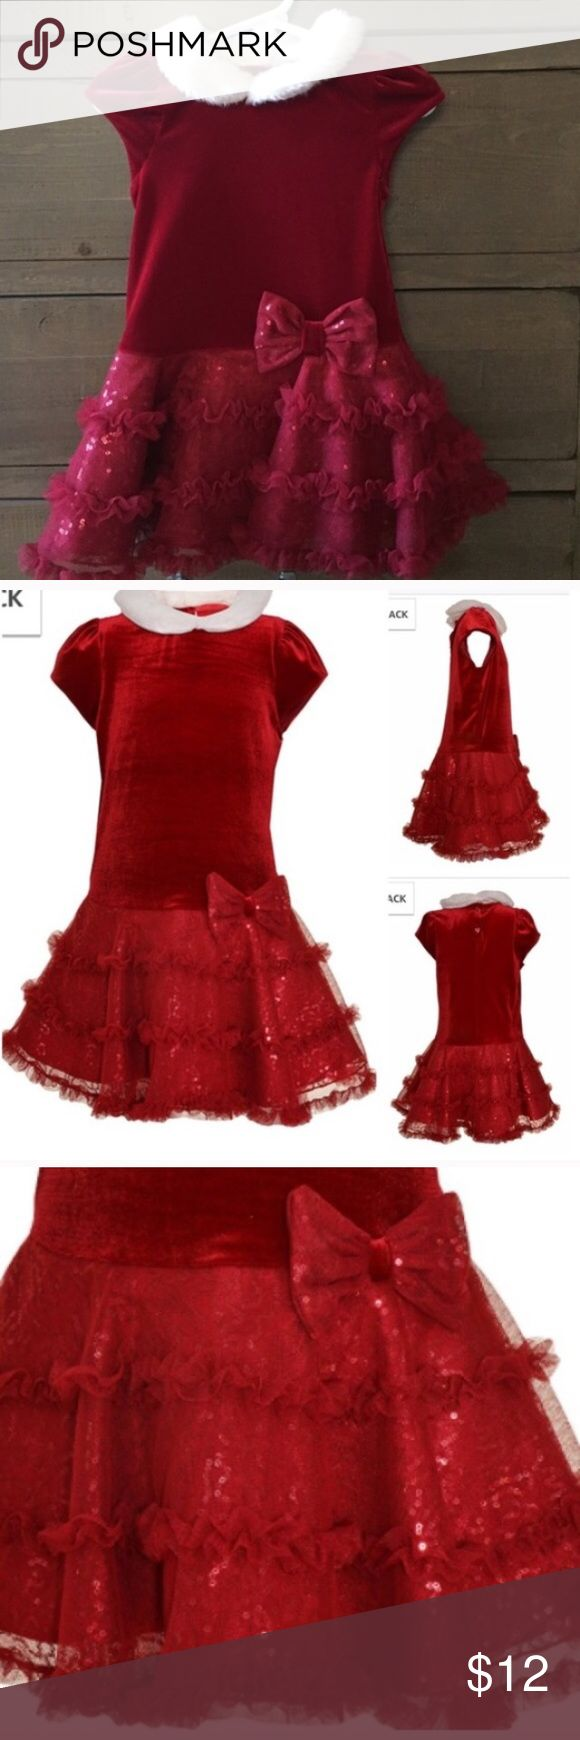 Baby Christmas Dress Looks new. Beautiful velour and satin ruffled Christmas church or party dress. Has 4 layers of ruffles. Adorable faux fur collar. Size 12 months. Purchase 3 or more items to get 25% off Dresses Formal